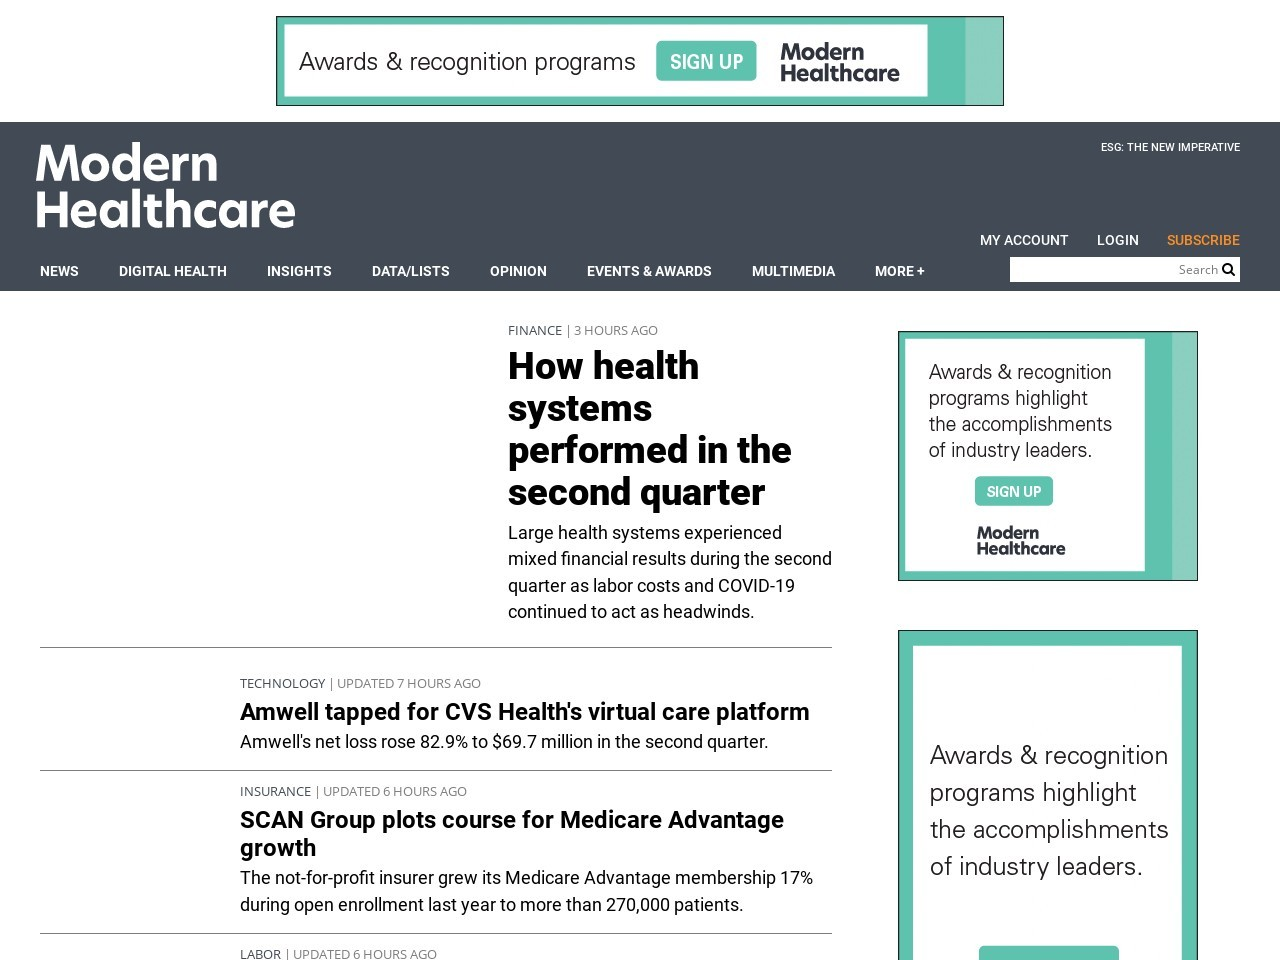 Healthcare Reform Update: Big shifts seen in Mass. insurance …